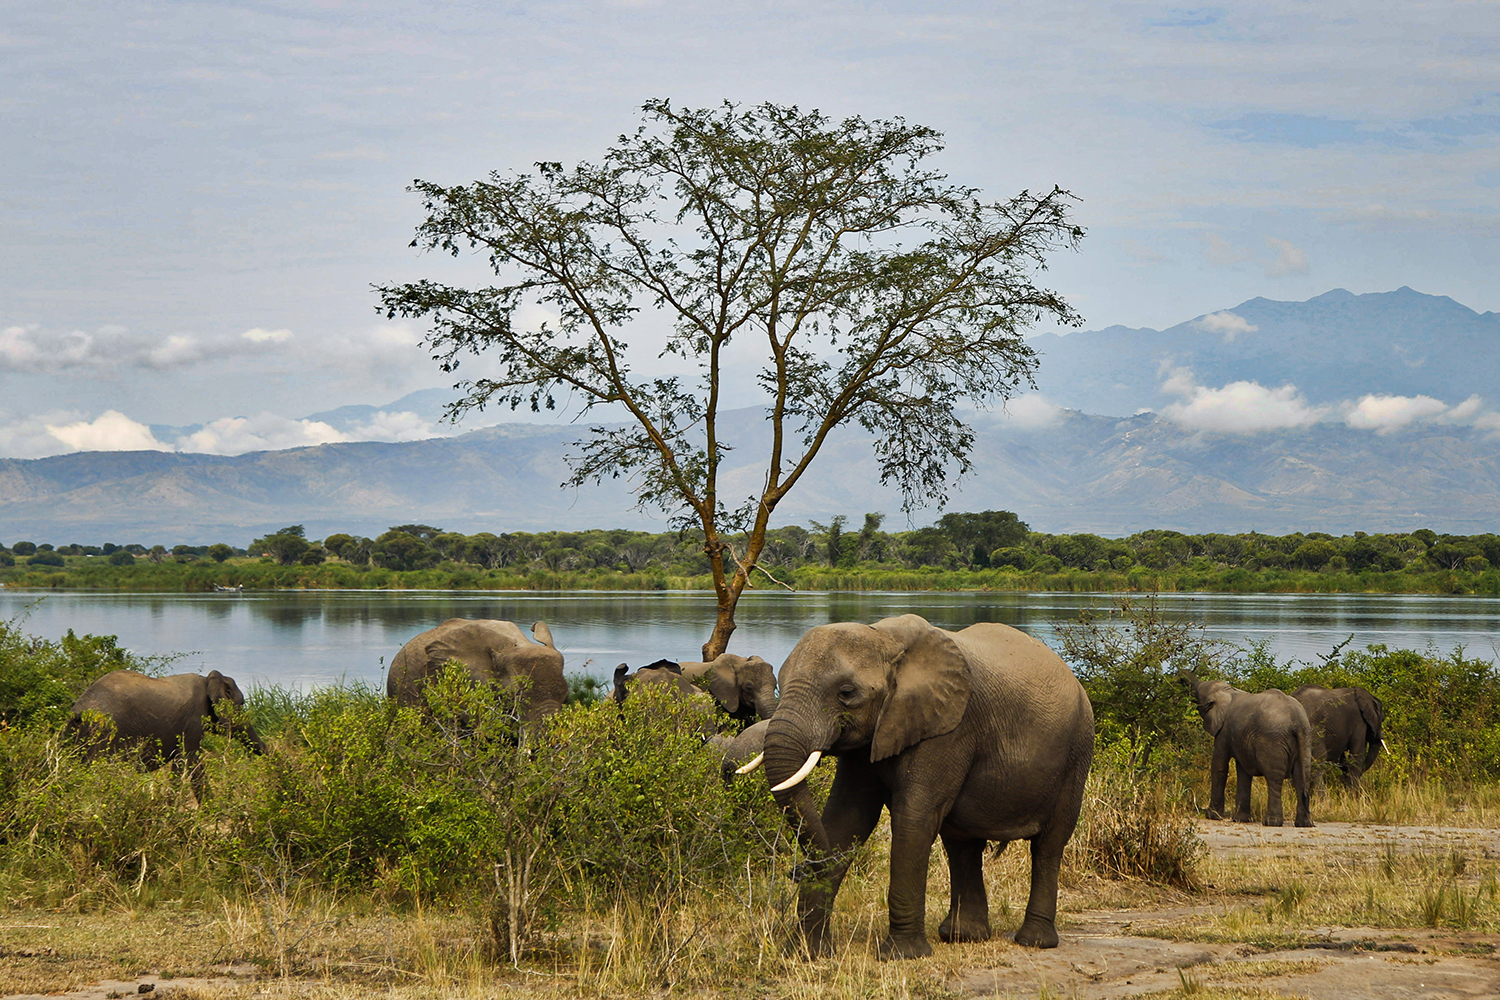 Elephants feed near Lake George in Queen Elizabeth National Park against the backdrop of the Rwenzori Mountains on Feb. 4, 2020.